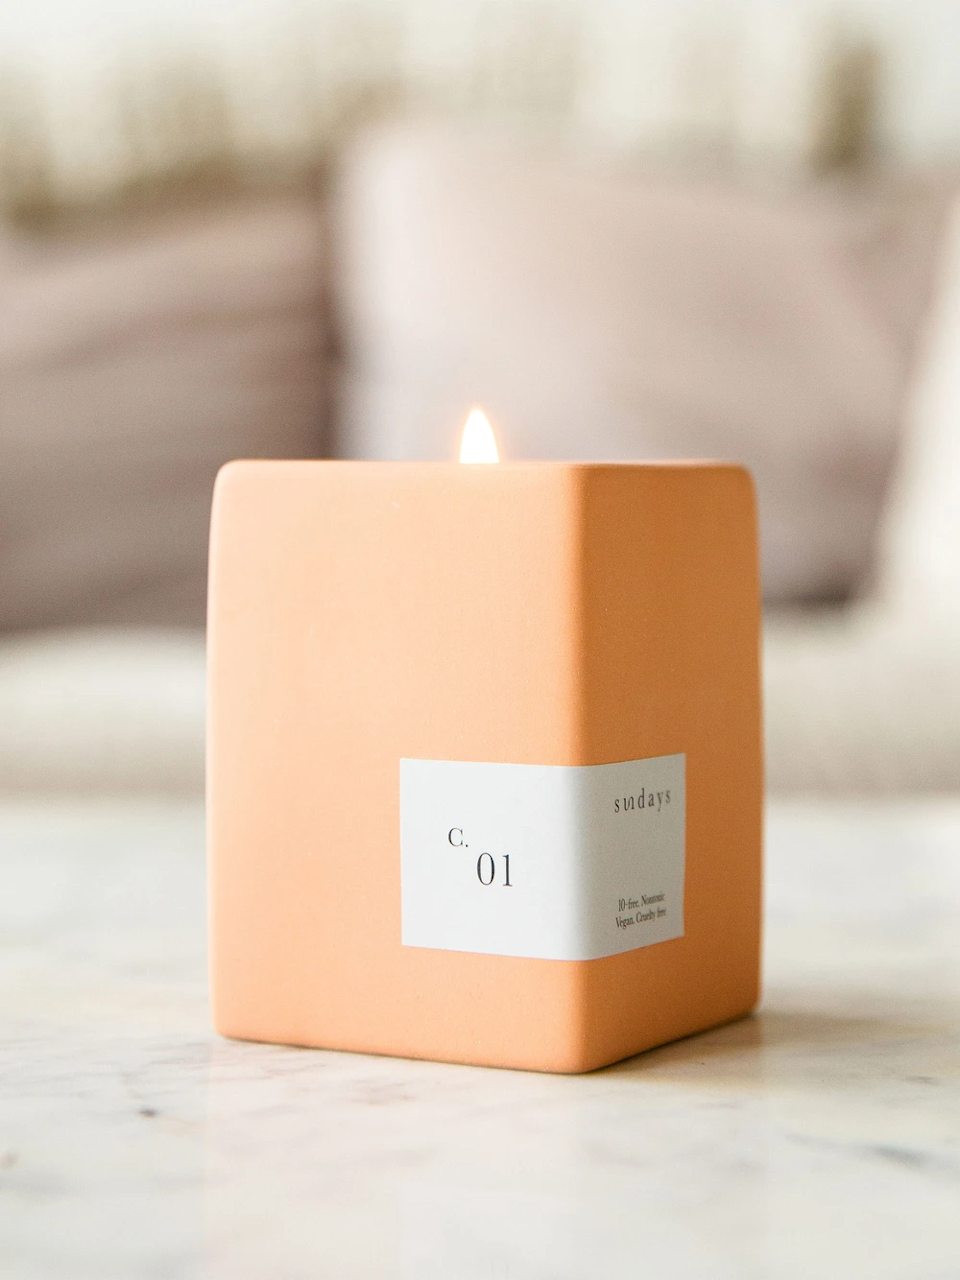 """<br><h3>Sundays Smoked Hemp Candle<br></h3><br>Self-care is the <em>best</em> care, especially when it's low maintenance. Give yourself the gift of warm and cleansing aromatics. This smokey hemp candle emanates notes of green fir needle, lemon, smokey lilac, and hemp flower to help you unwind at home. Plus, it's a plenty chic decor accent, even when it's <em>not</em> lit. <br><br><strong>Sundays</strong> Smoked Hemp Candle, $, available at <a href=""""https://go.skimresources.com/?id=30283X879131&url=https%3A%2F%2Fstandarddose.com%2Fcollections%2Fcandles%2Fproducts%2Fsundays-smoked-hemp-candle"""" rel=""""nofollow noopener"""" target=""""_blank"""" data-ylk=""""slk:Standard Dose"""" class=""""link rapid-noclick-resp"""">Standard Dose</a>"""